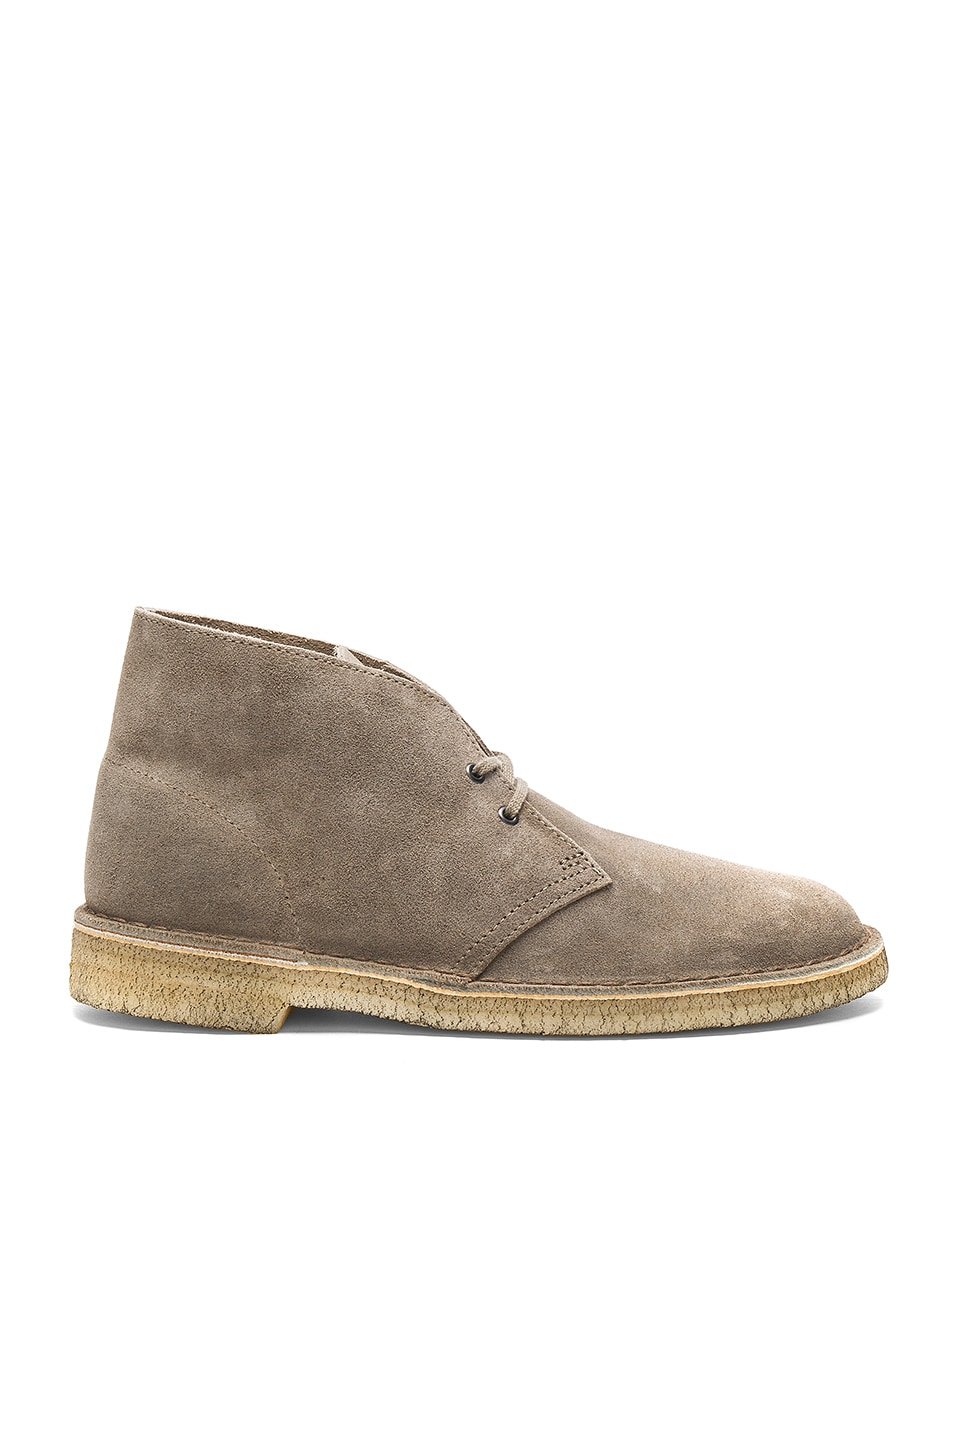 Clarks Desert Boot in Taupe Distressed